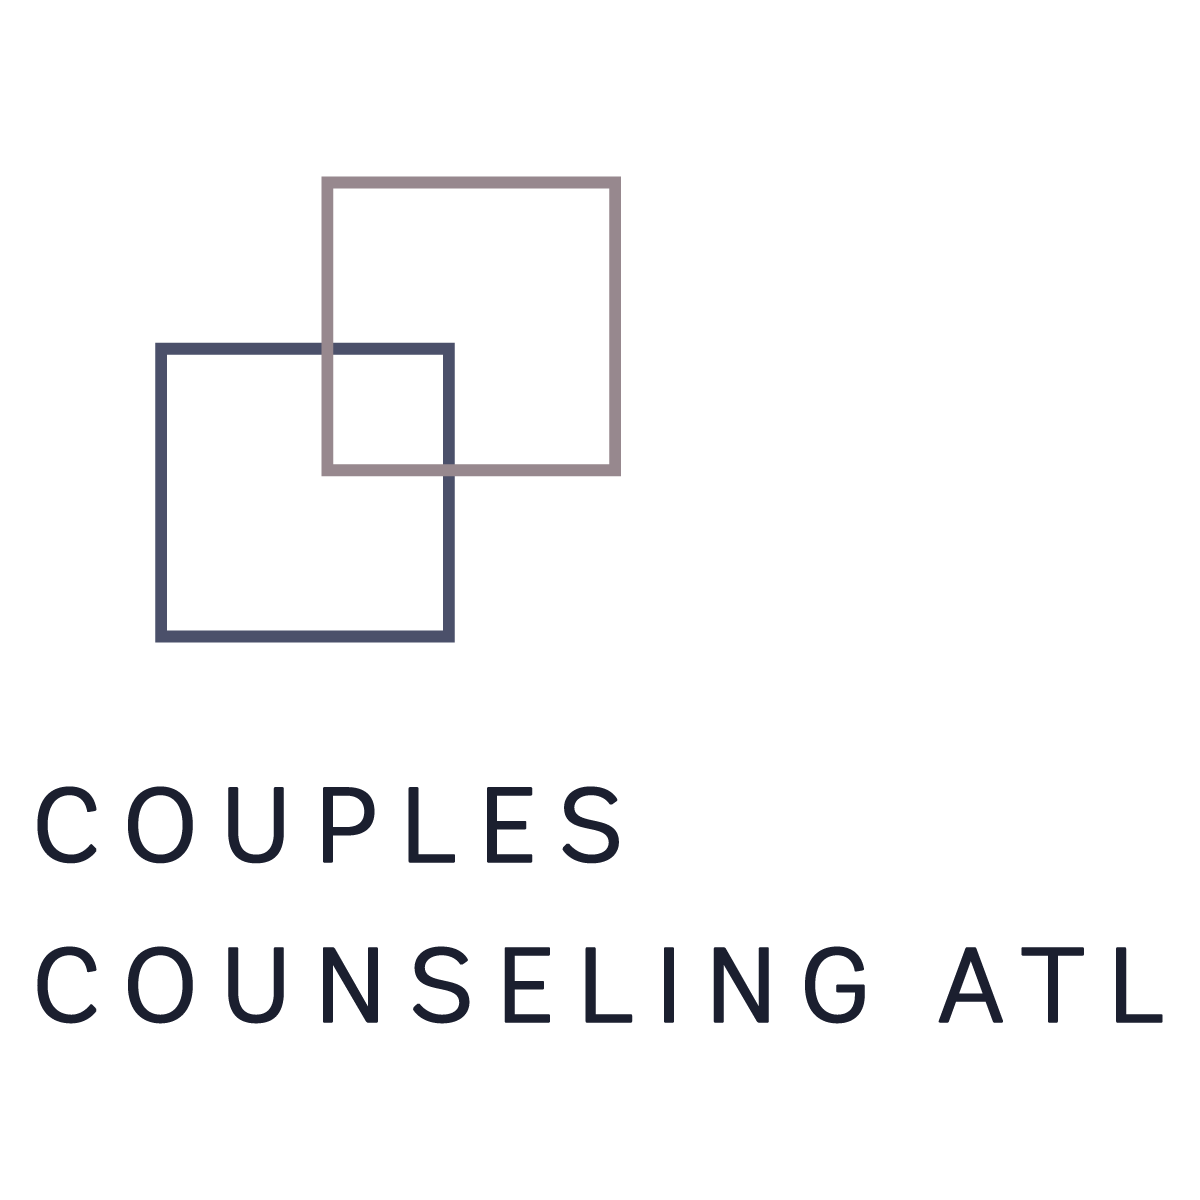 Couples Counseling ATL | Gottman Method Couples Therapy - Atlanta, GA